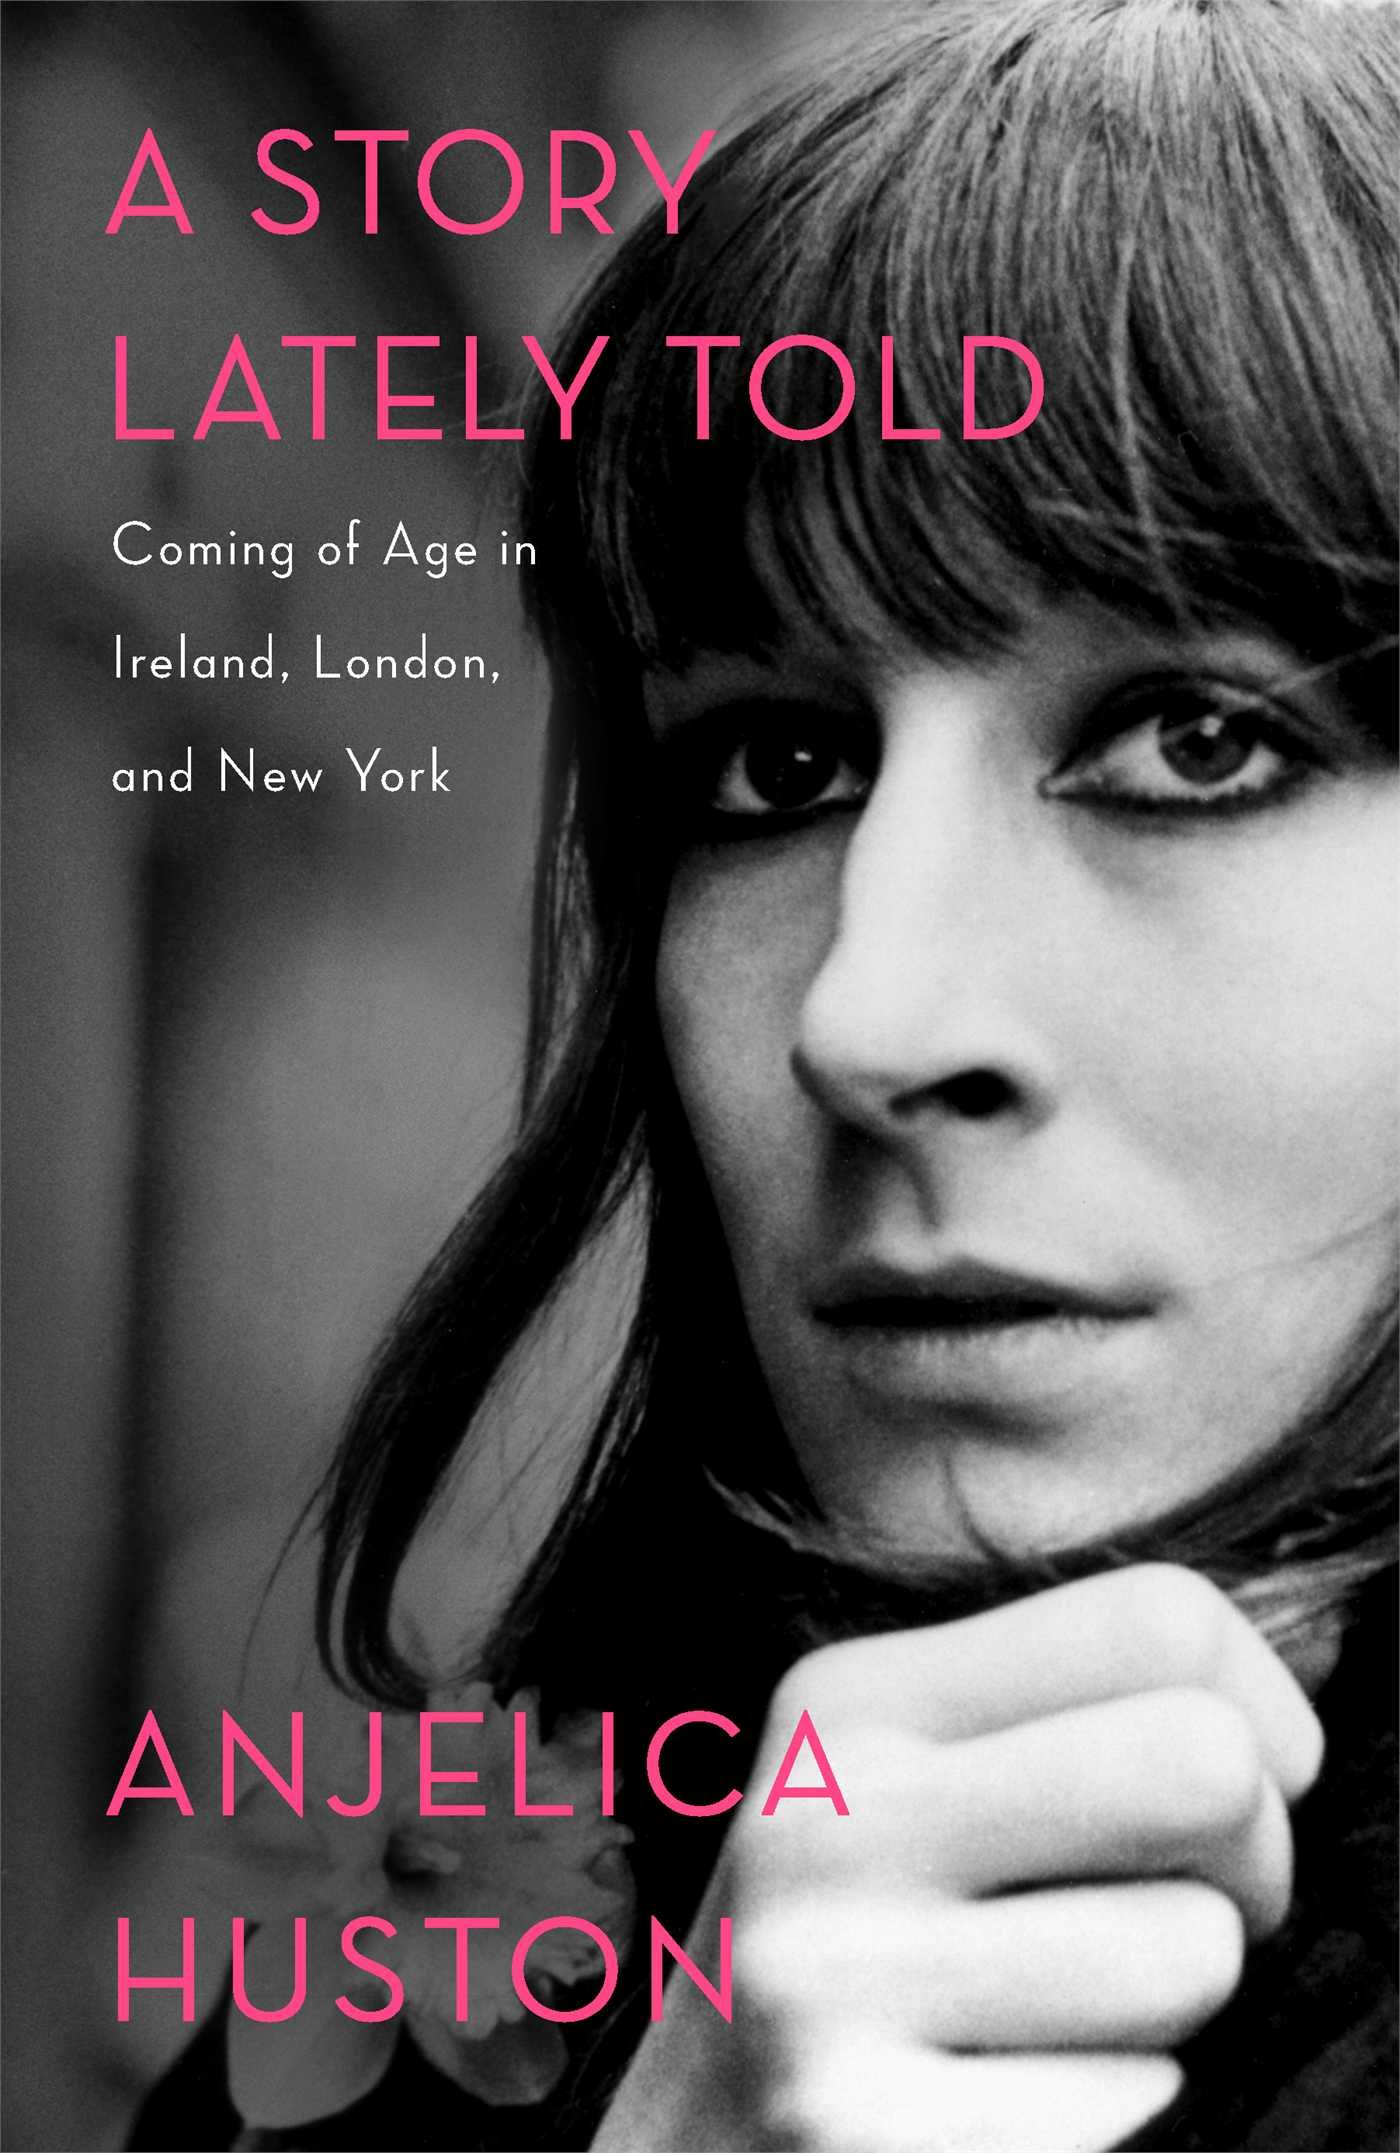 A Story Lately Told by Anjelica Huston